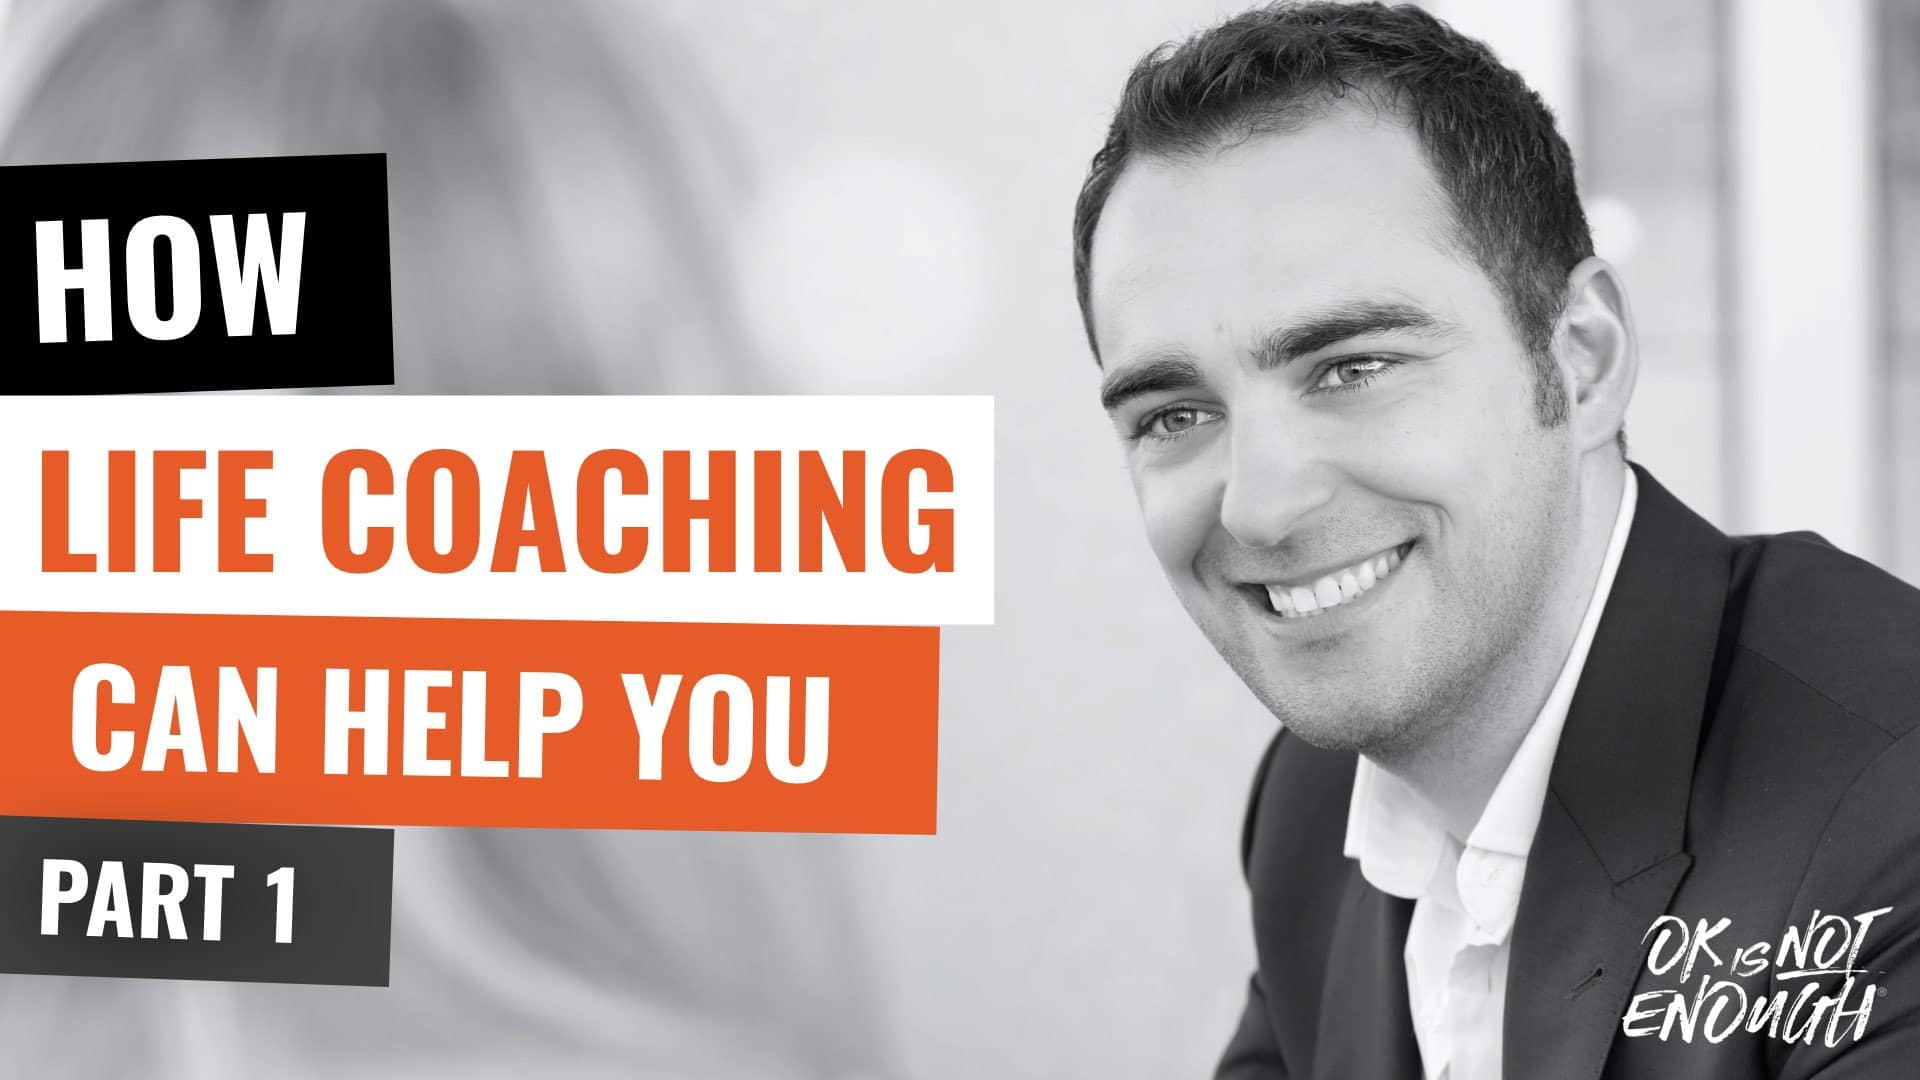 How Life Coaching Can Help You: 10+ Powerful Benefits of Working With a Life Coach (part 1)